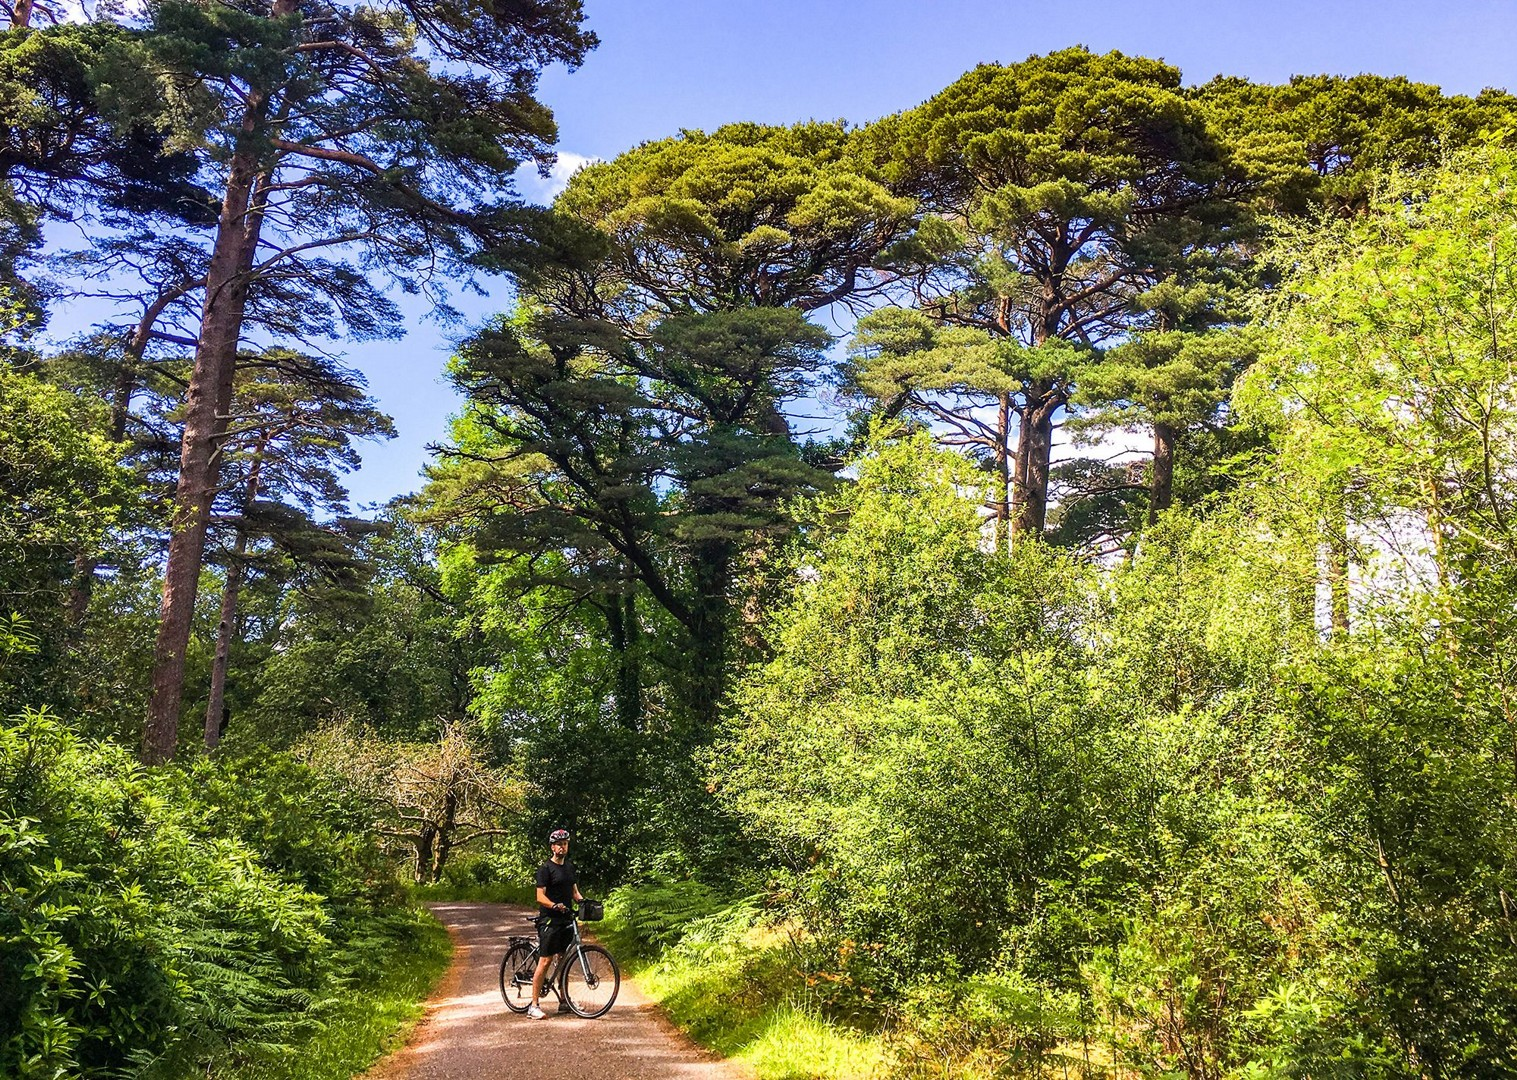 cycling-ireland-kerry-holiday-self-guided-leisure-trip.jpg - Ireland - Highlights of Kerry - Self-Guided Leisure Cycling Holiday - Leisure Cycling